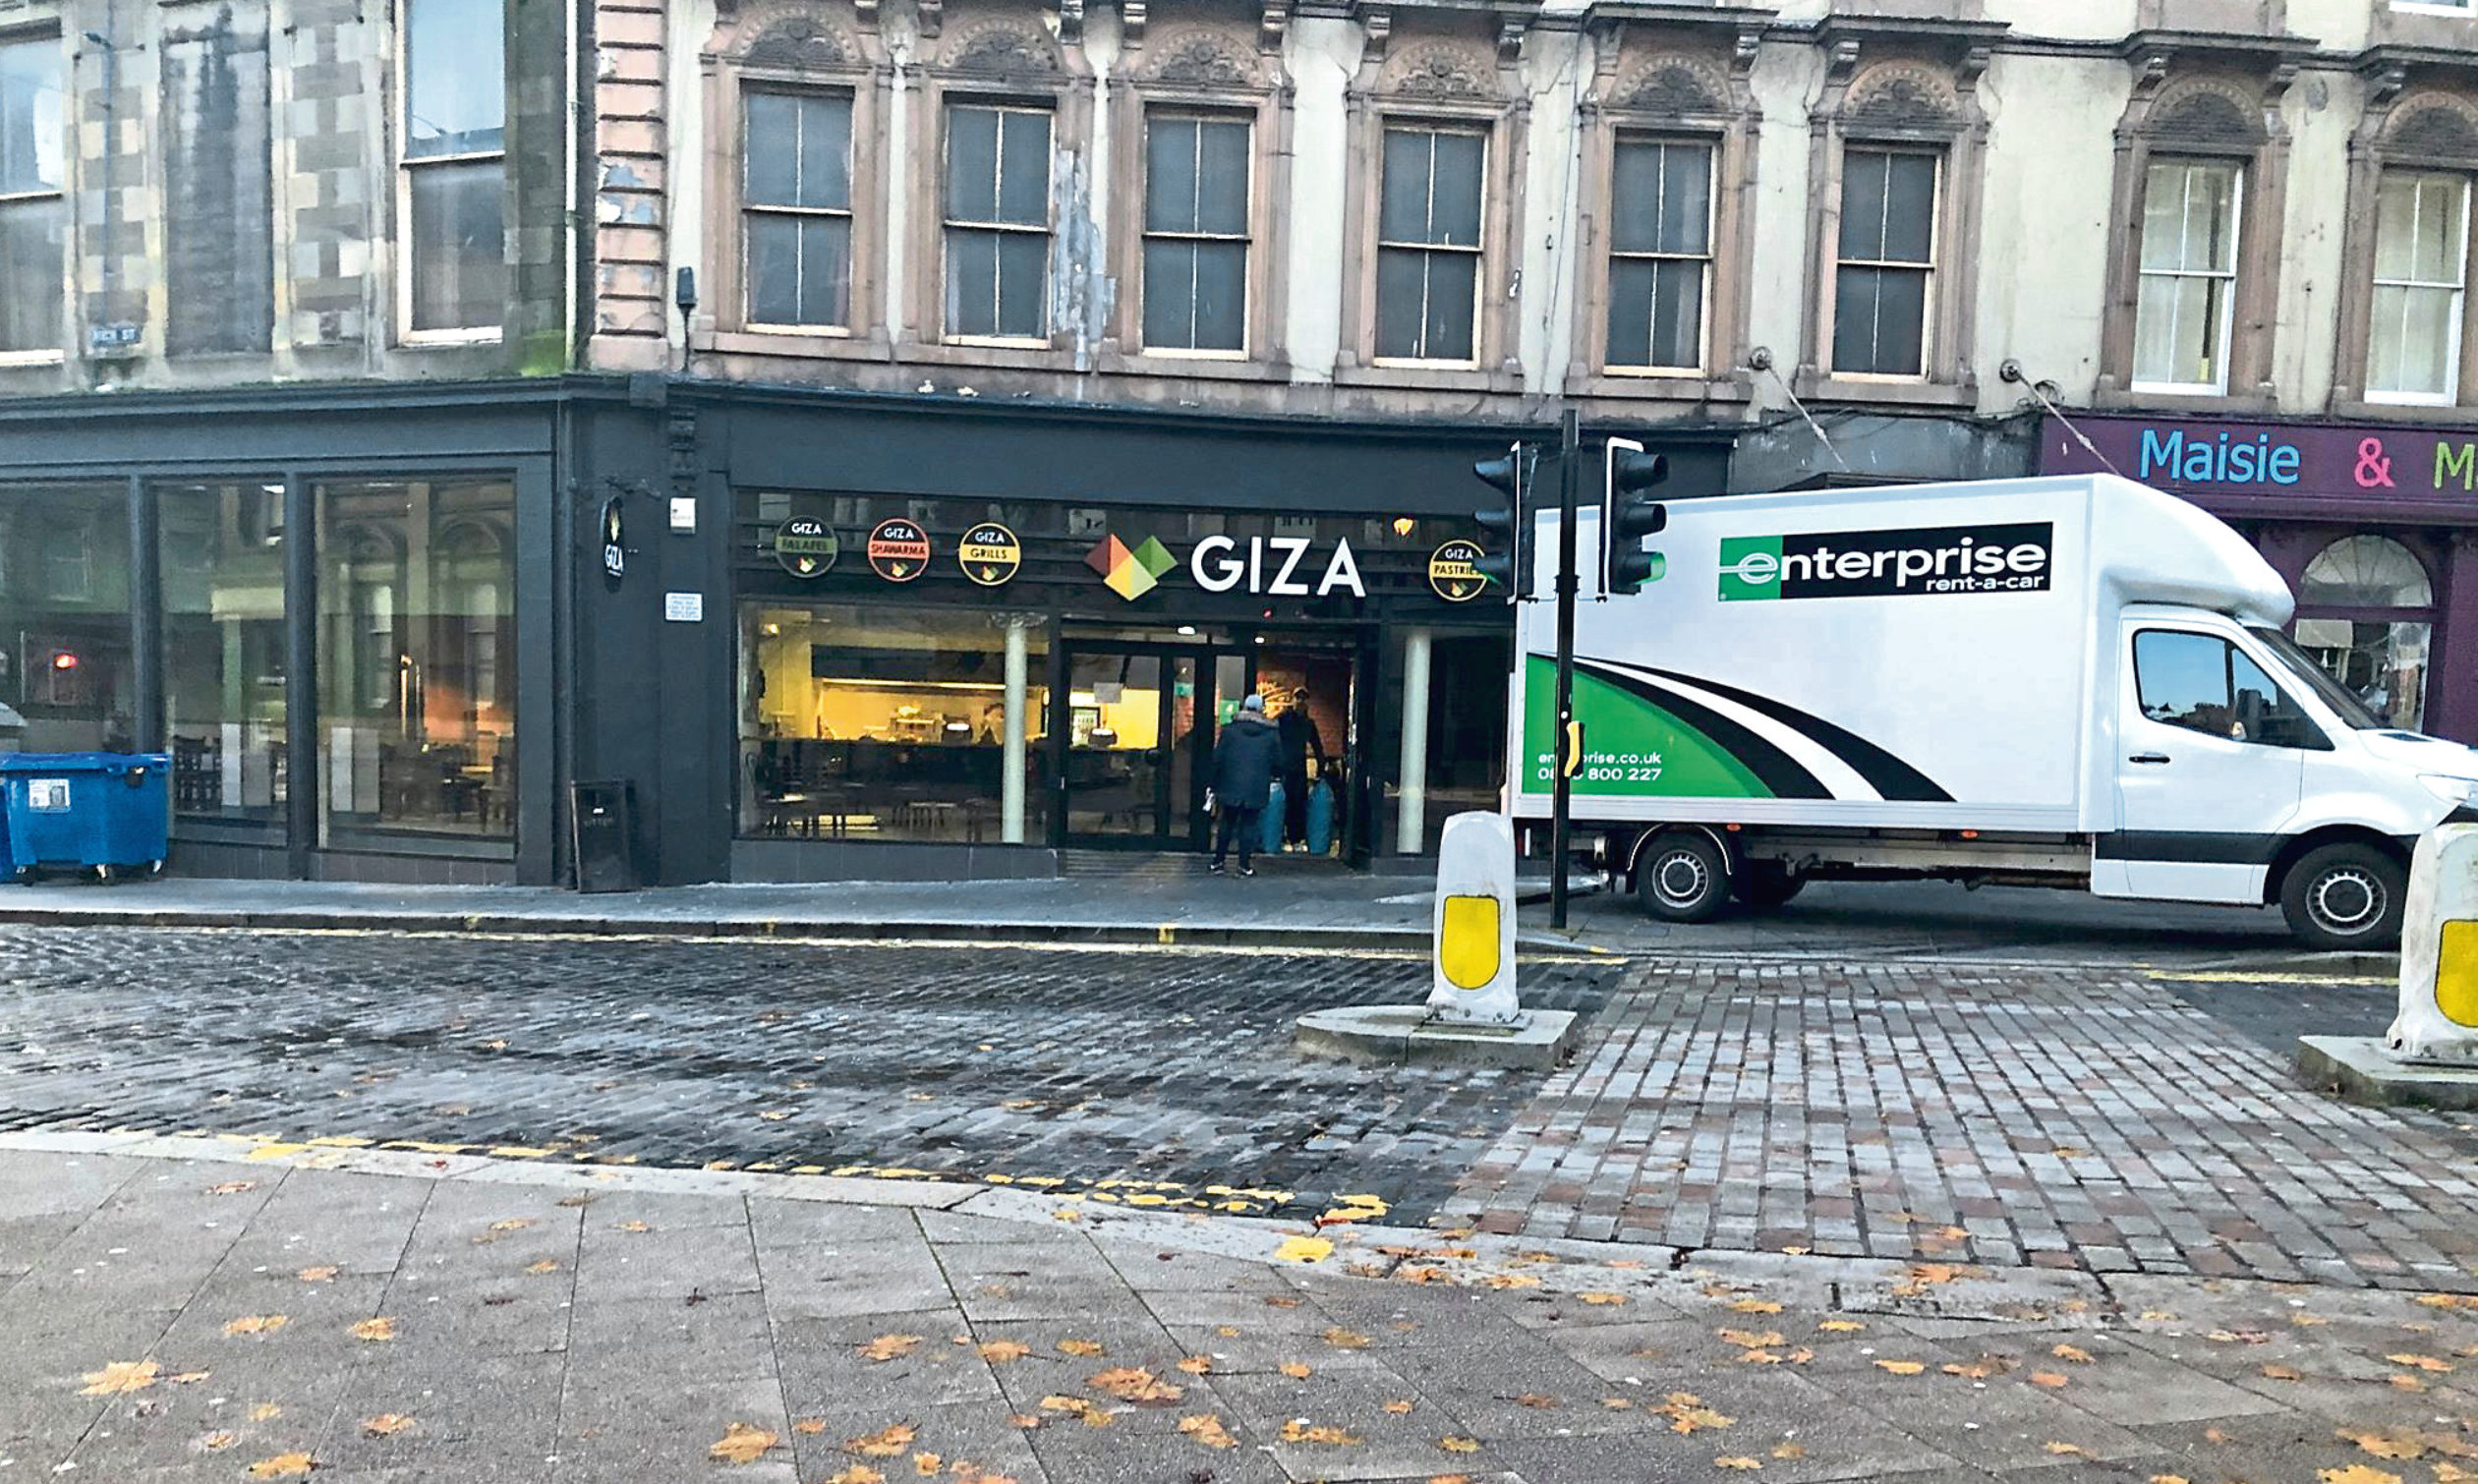 Giza Restaurant has now closed.